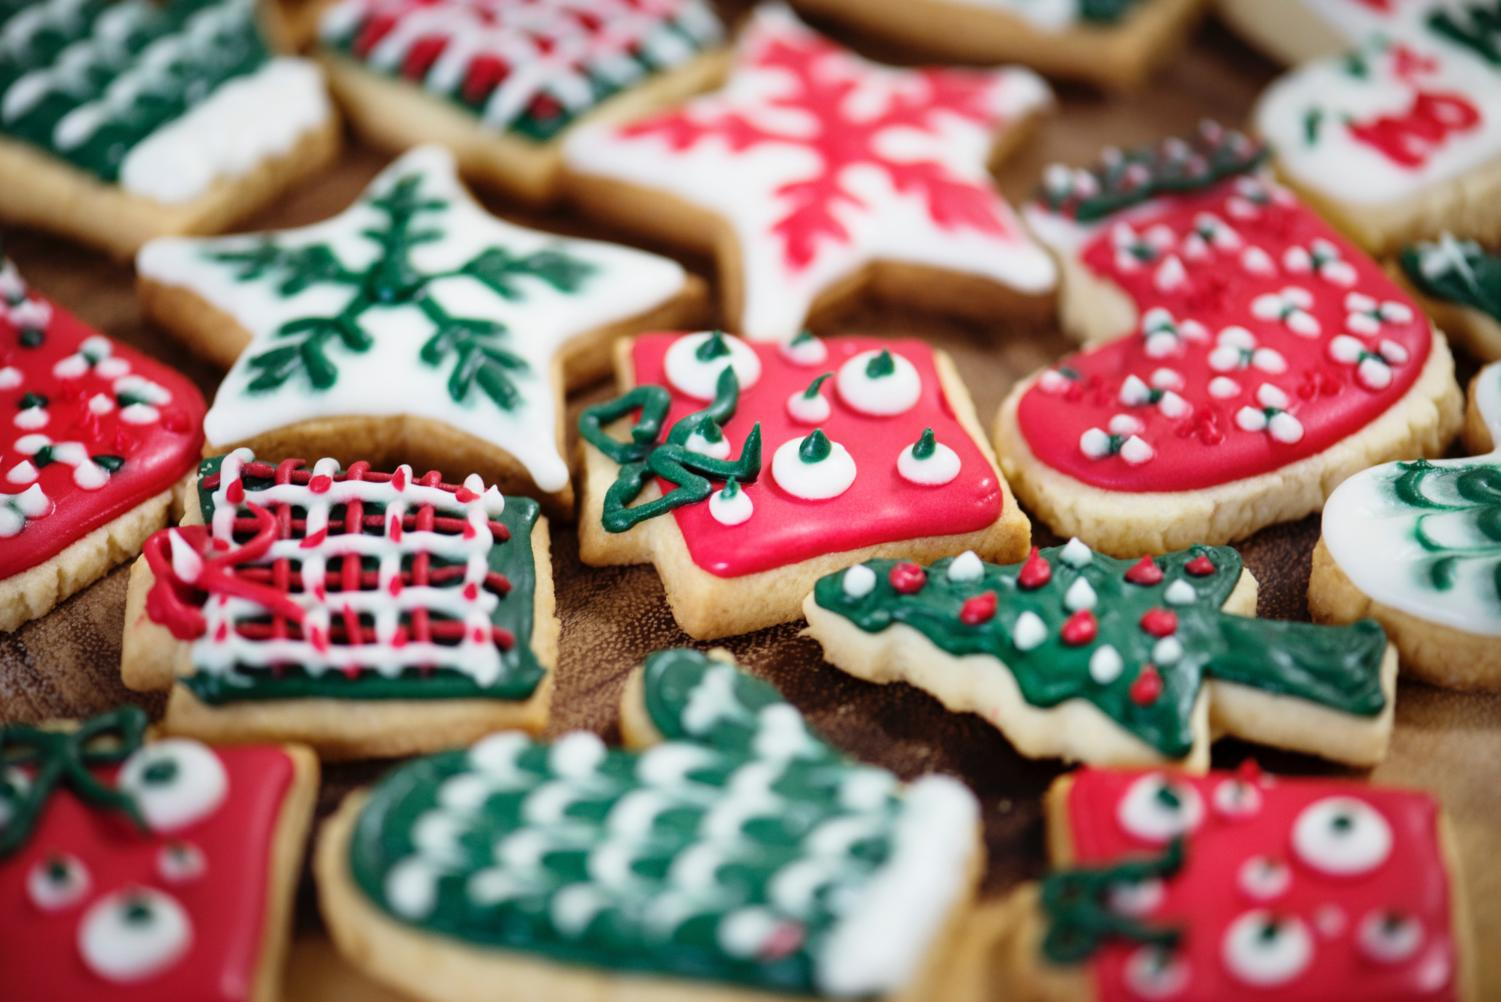 Great tasting sugar cookies decorated for the Christmas holiday. Image labeled for reuse from Pexels.